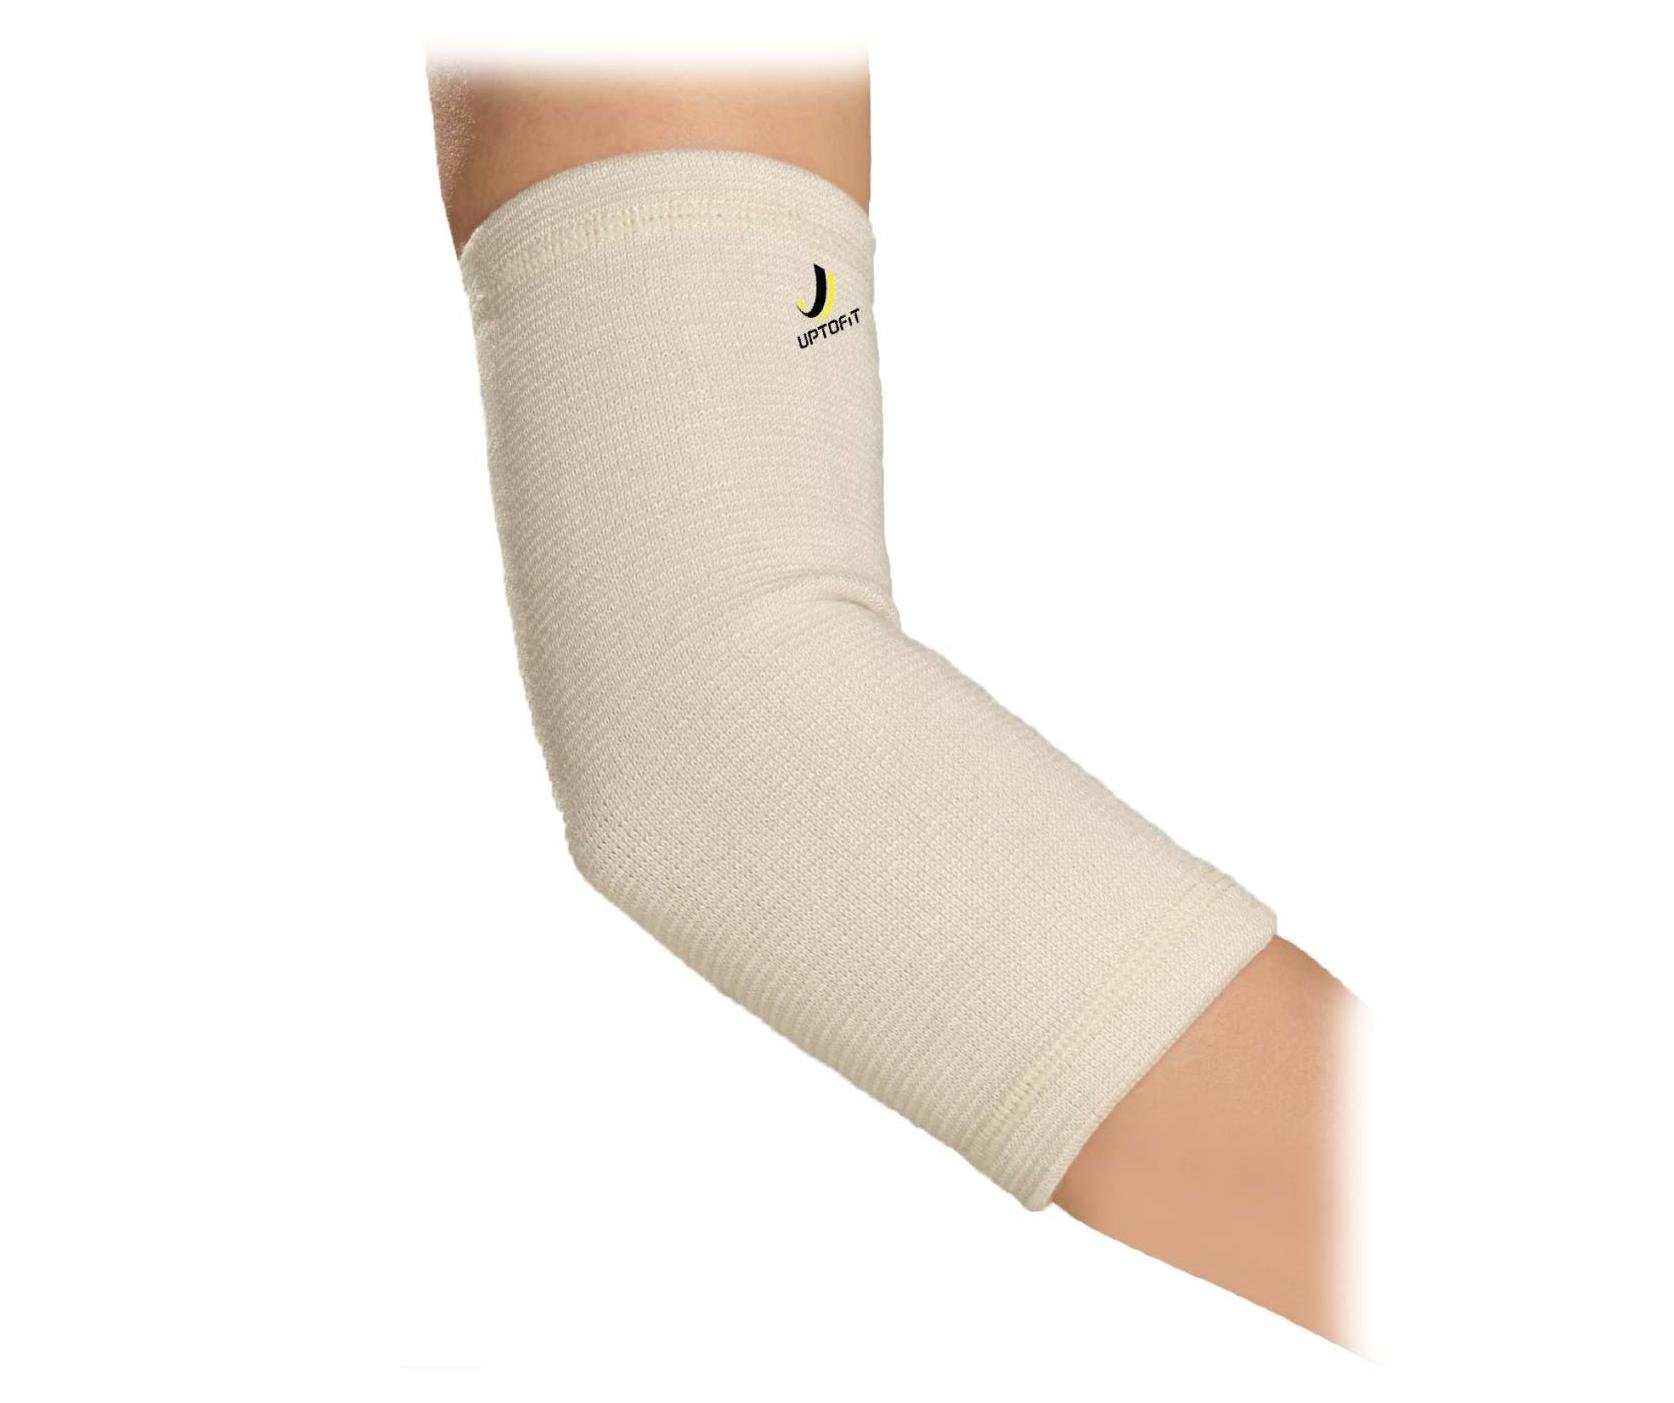 UPTOFIT Copper Elbow Sleeve for Bursitis Tennis Elbow Pain Weightlifting Basketball Golf Elbow Arthritis Lacrosse Elbow Arm and Elbow Support for Men and Women (S)